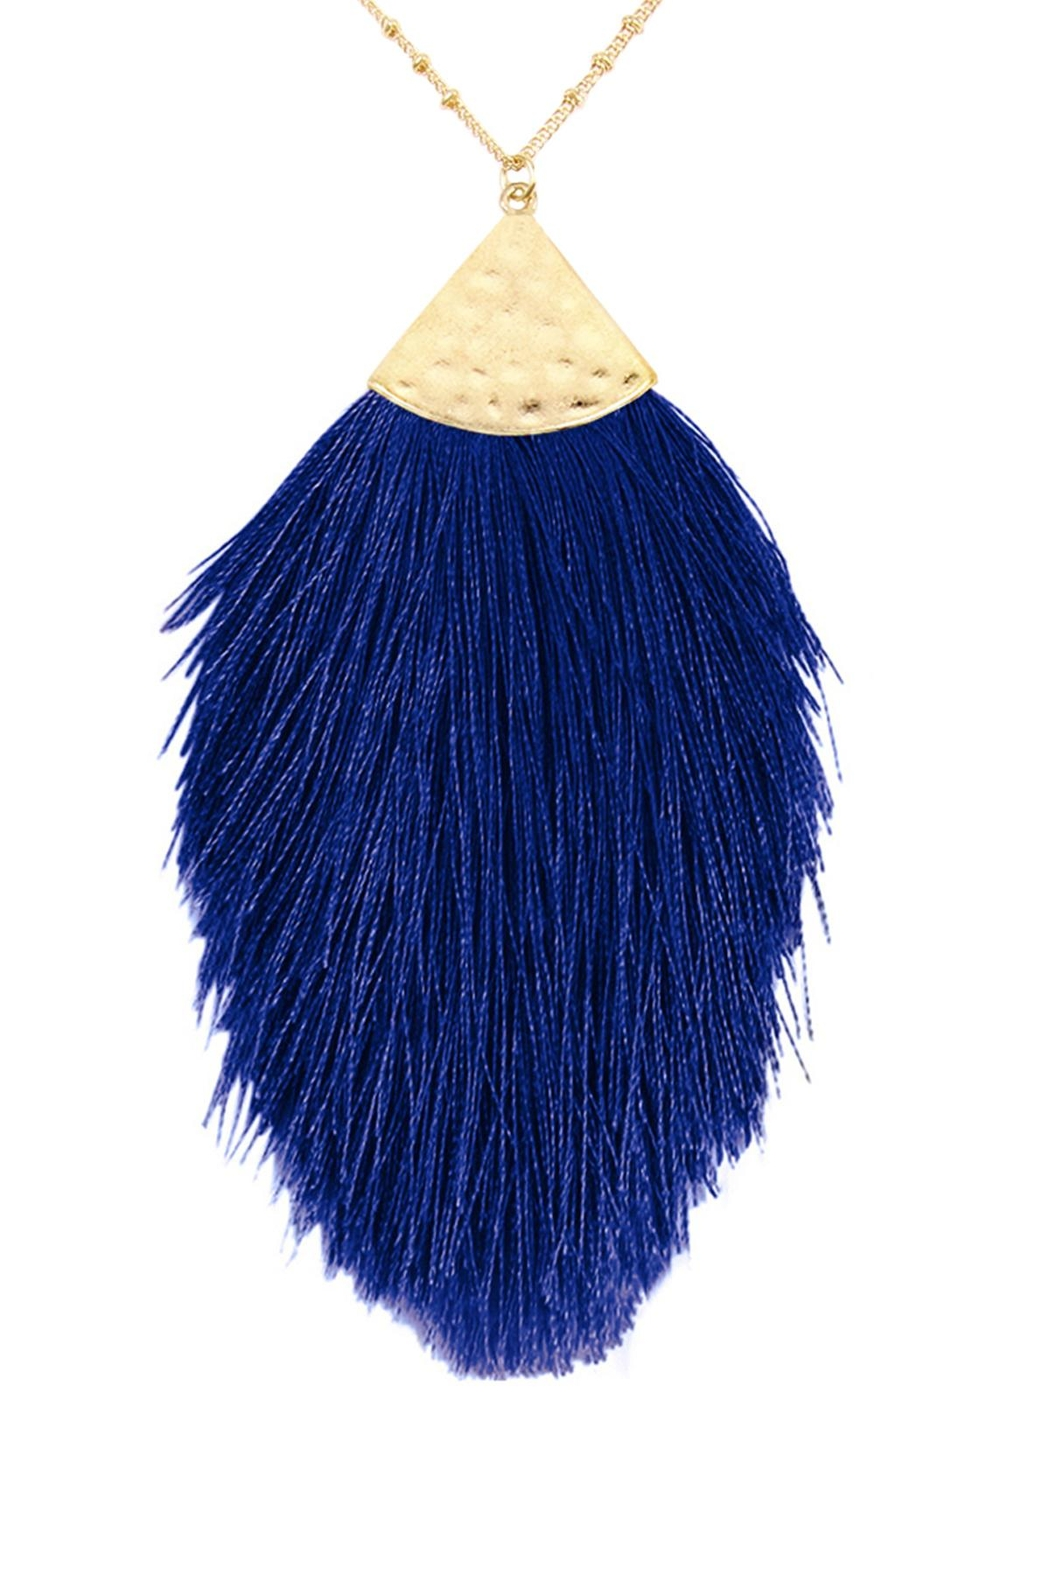 Riah Fashion Tassel-Pendant-Dainty-Necklace - Front Cropped Image